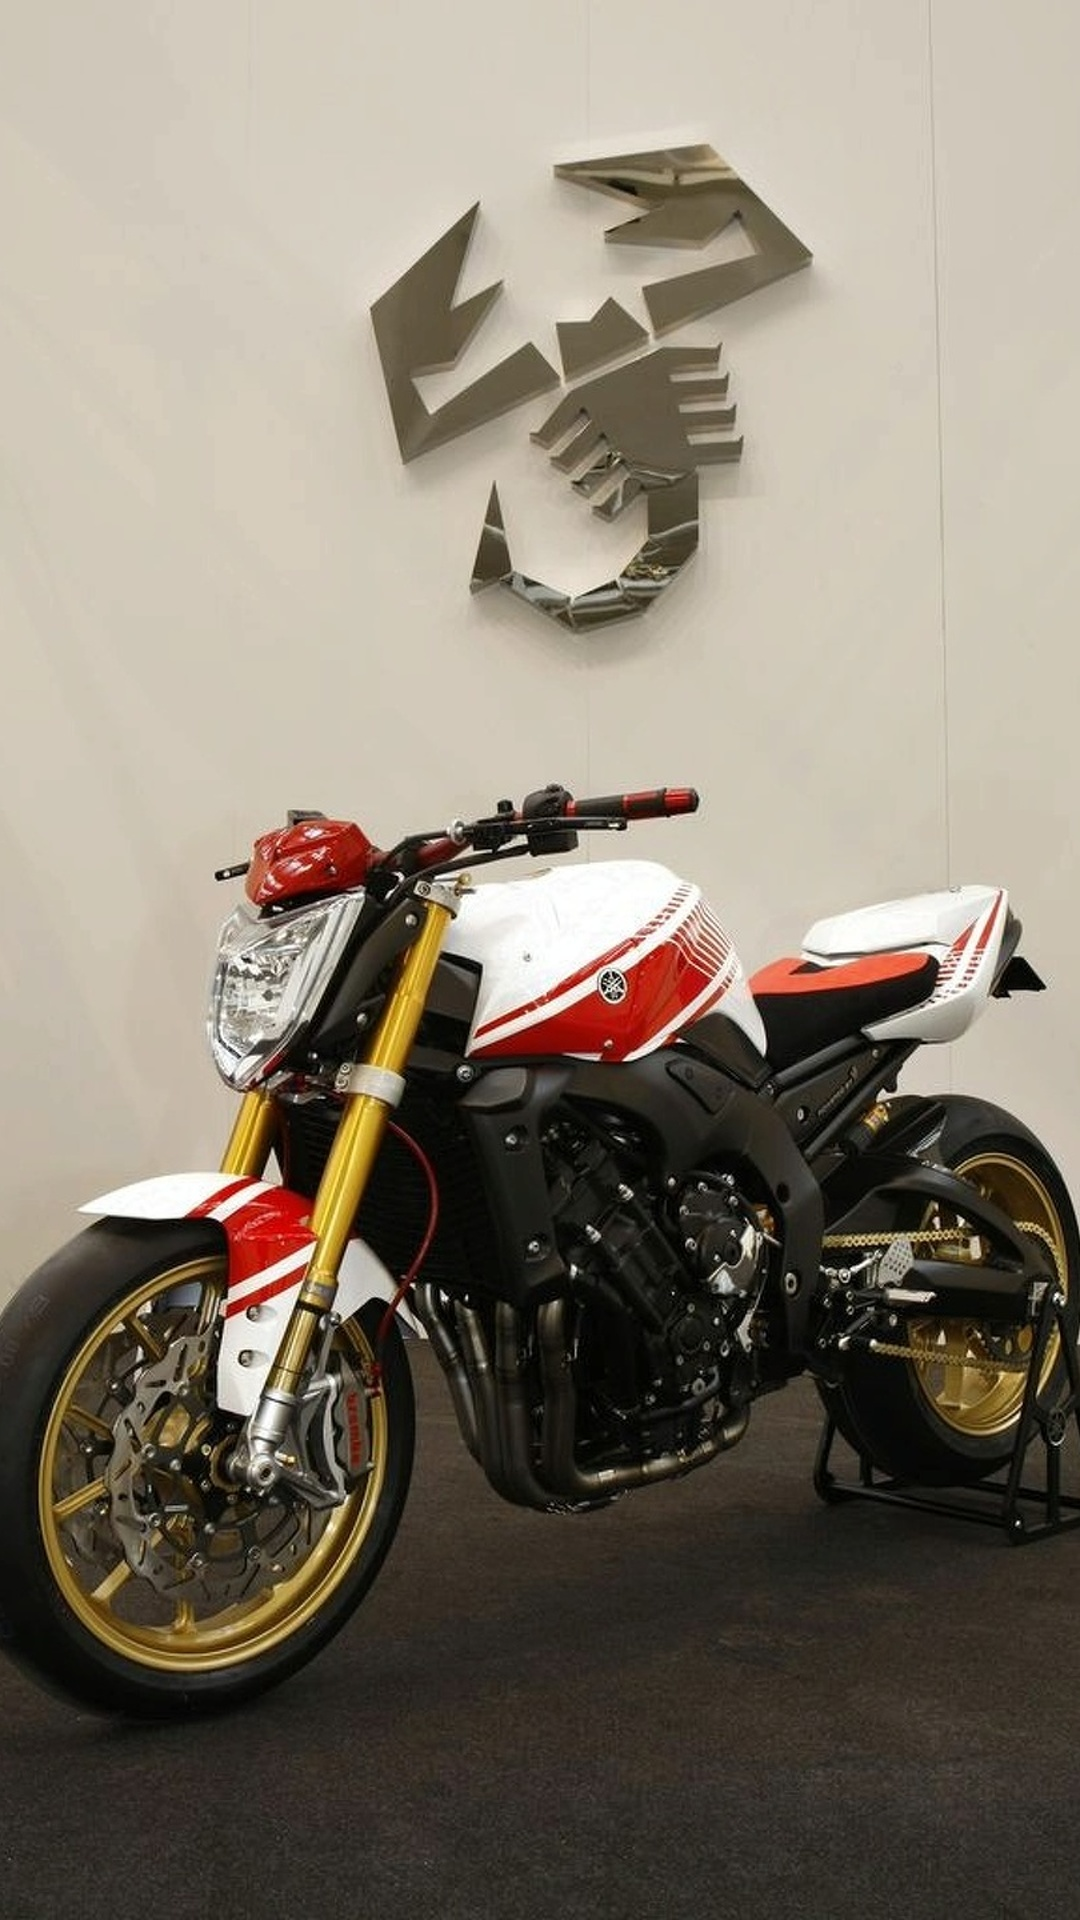 Fiat Abarth co-brands with Intel PC and Yamaha FZ1